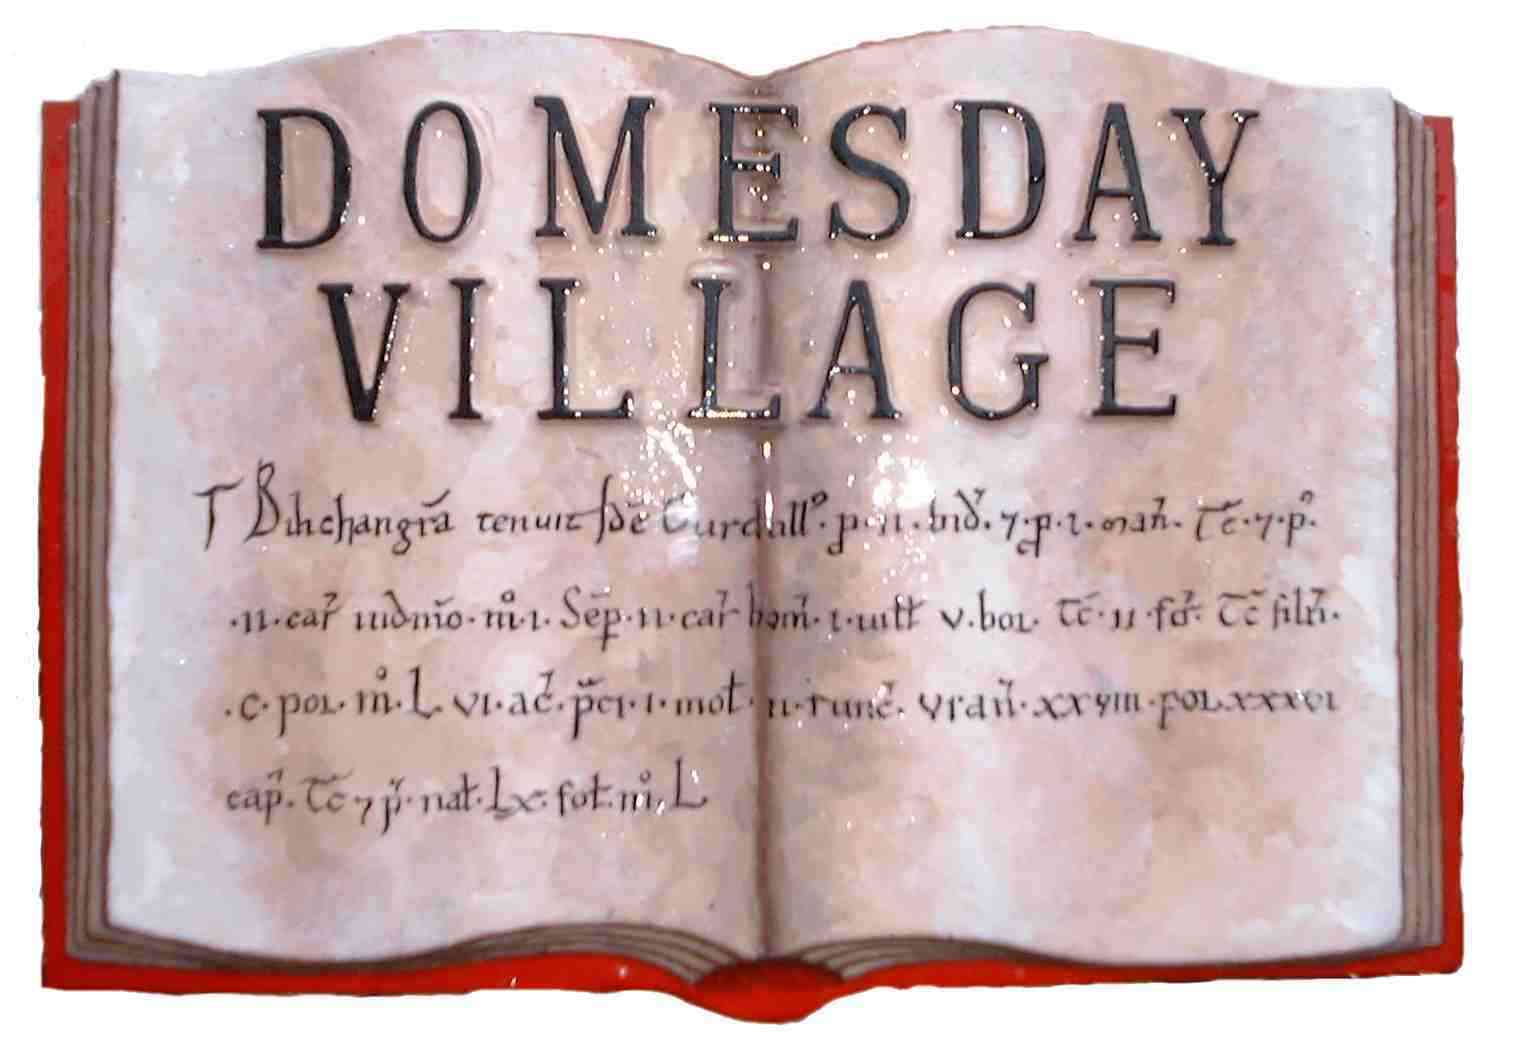 Domesday Village